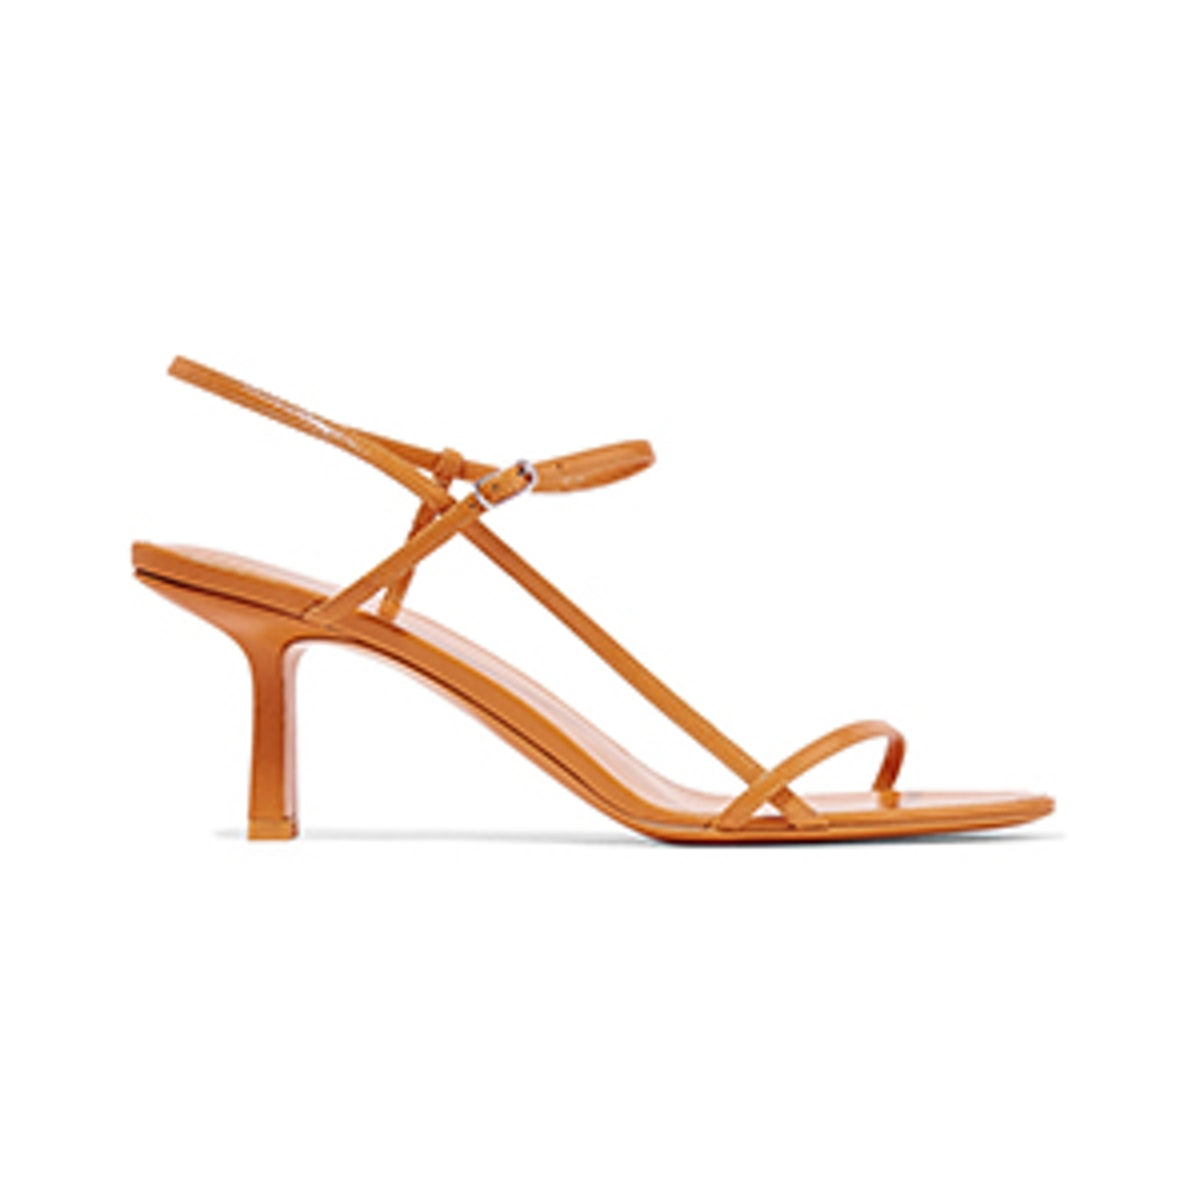 The Row Nude Leather Sandals